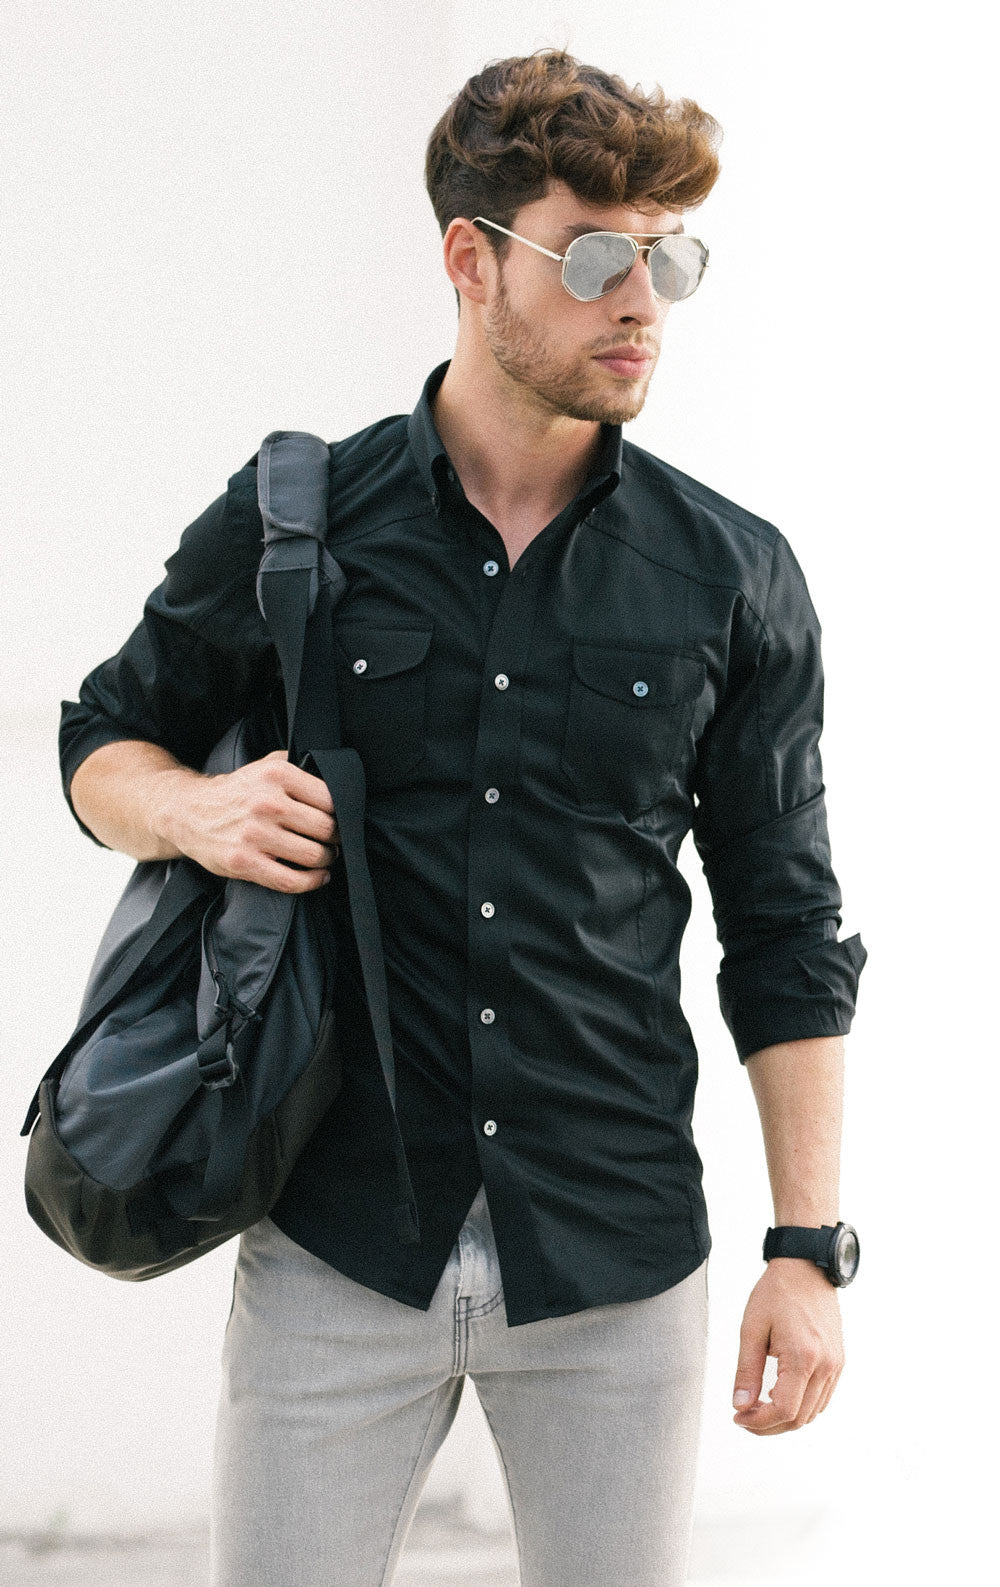 Men S Outfit Guide The Fundamentals Of Great Casual Outfits Batch